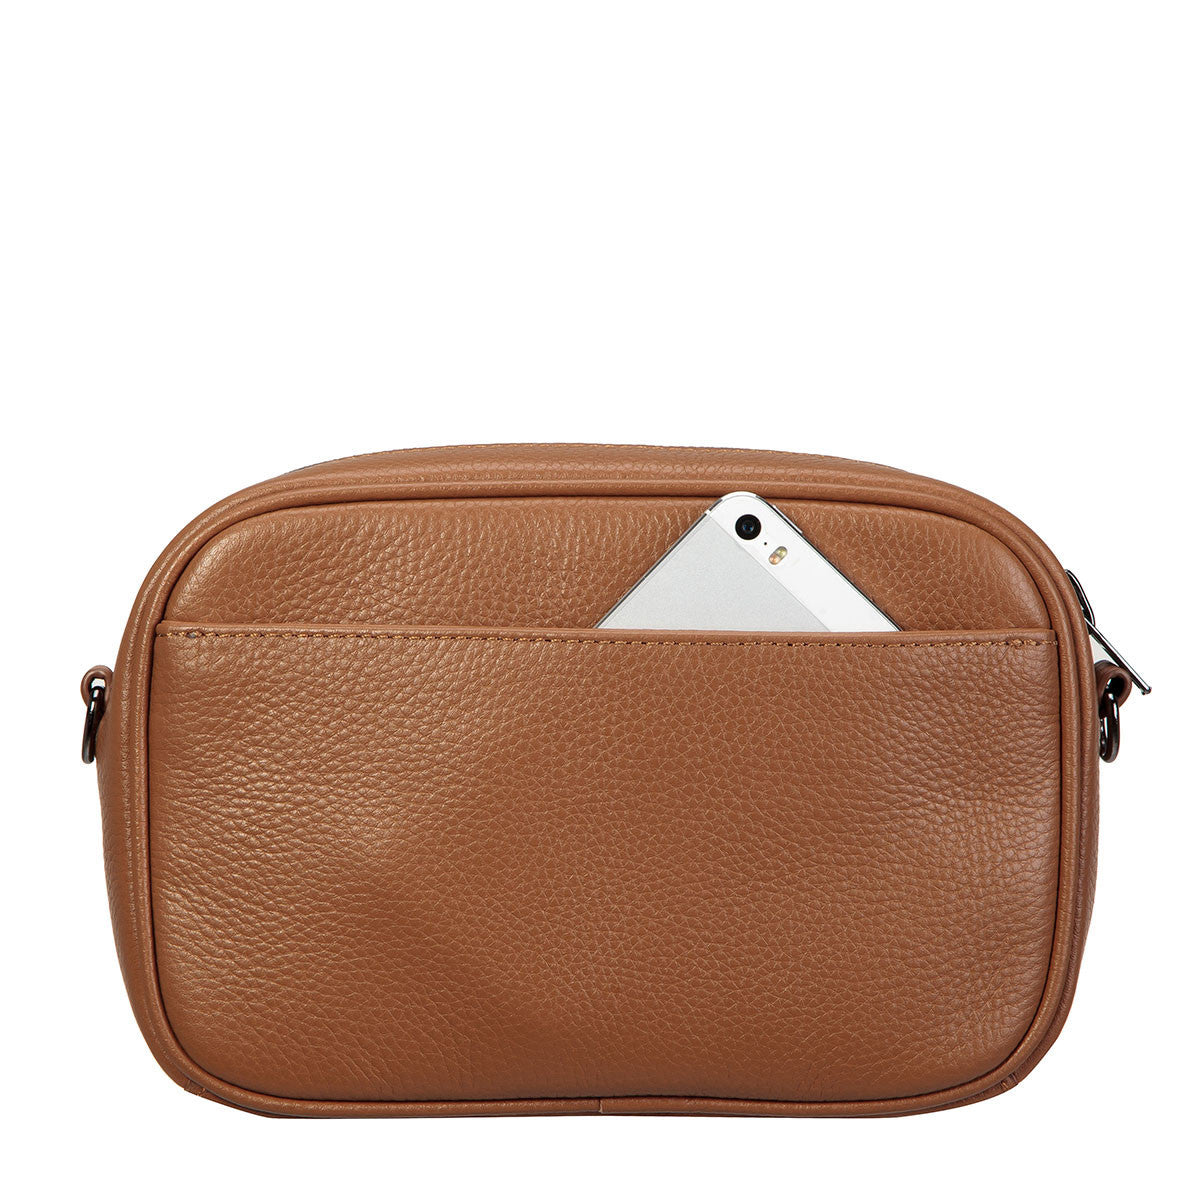 THE PLUNDER TAN LEATHER BAG FROM STATUS ANXIETY 4